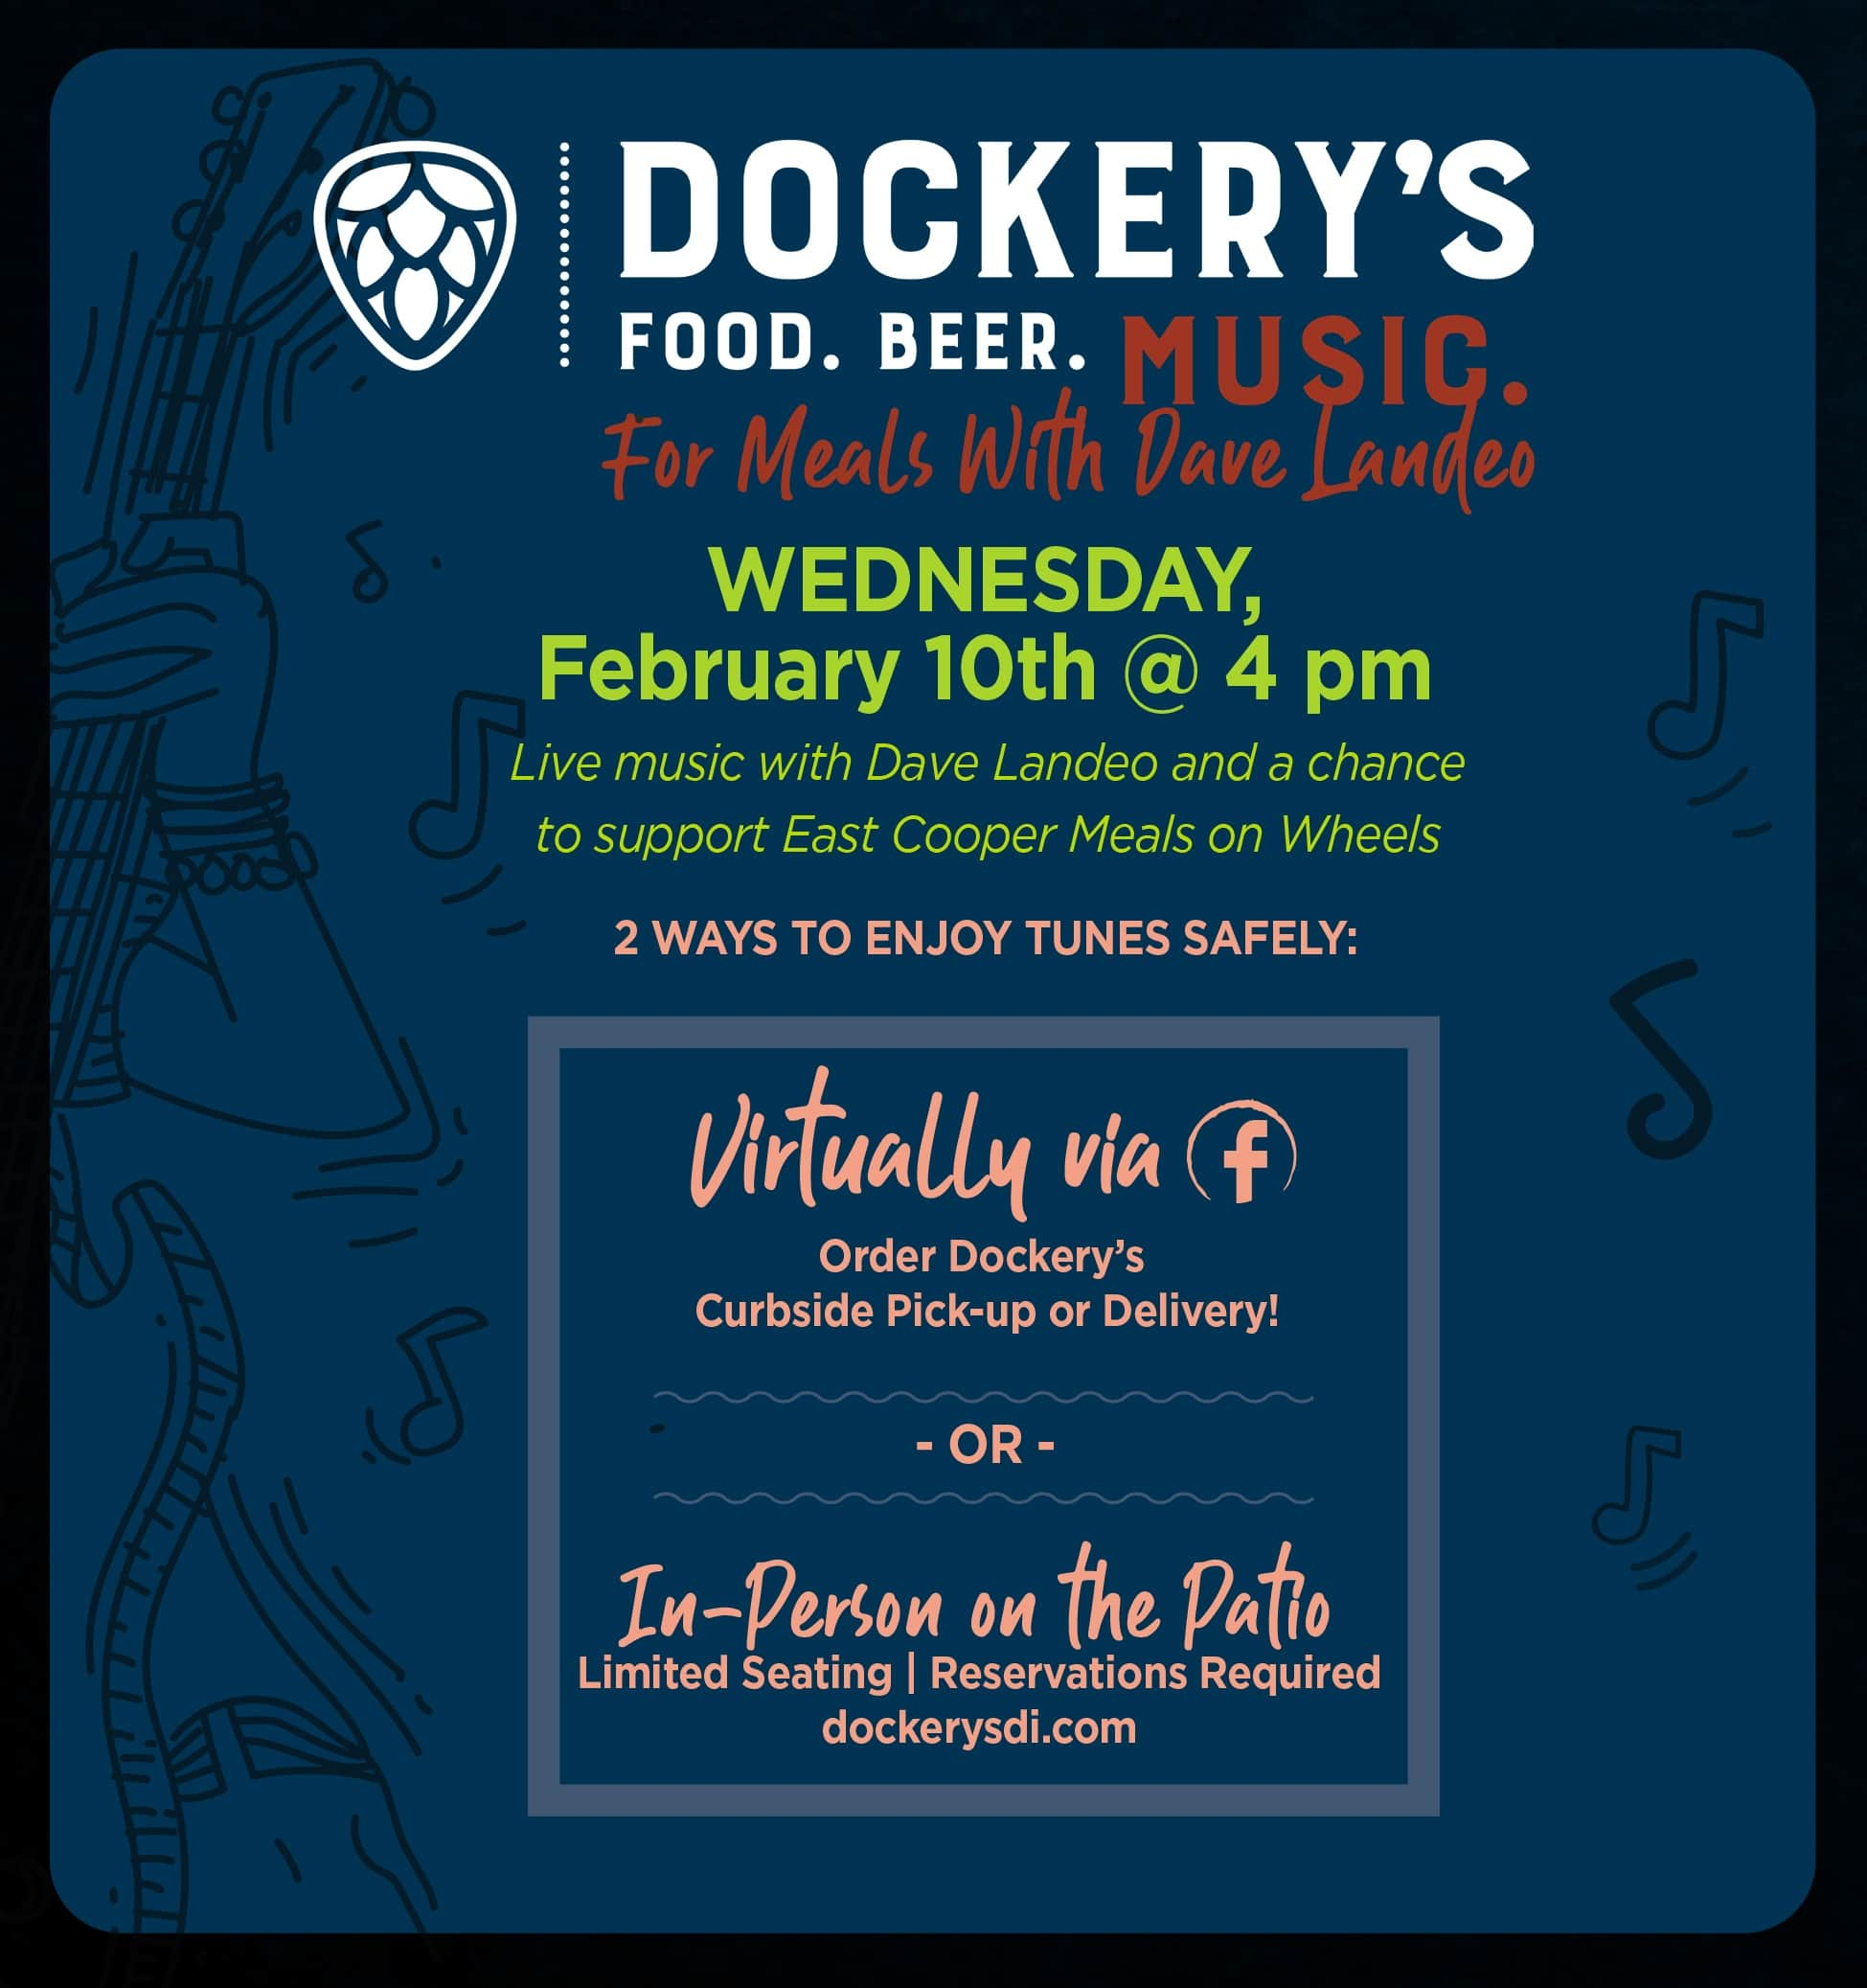 Fundraiser @ Dockery's, Band gig at The Windjammer, Valentine's Day @ Red's Icehouse!